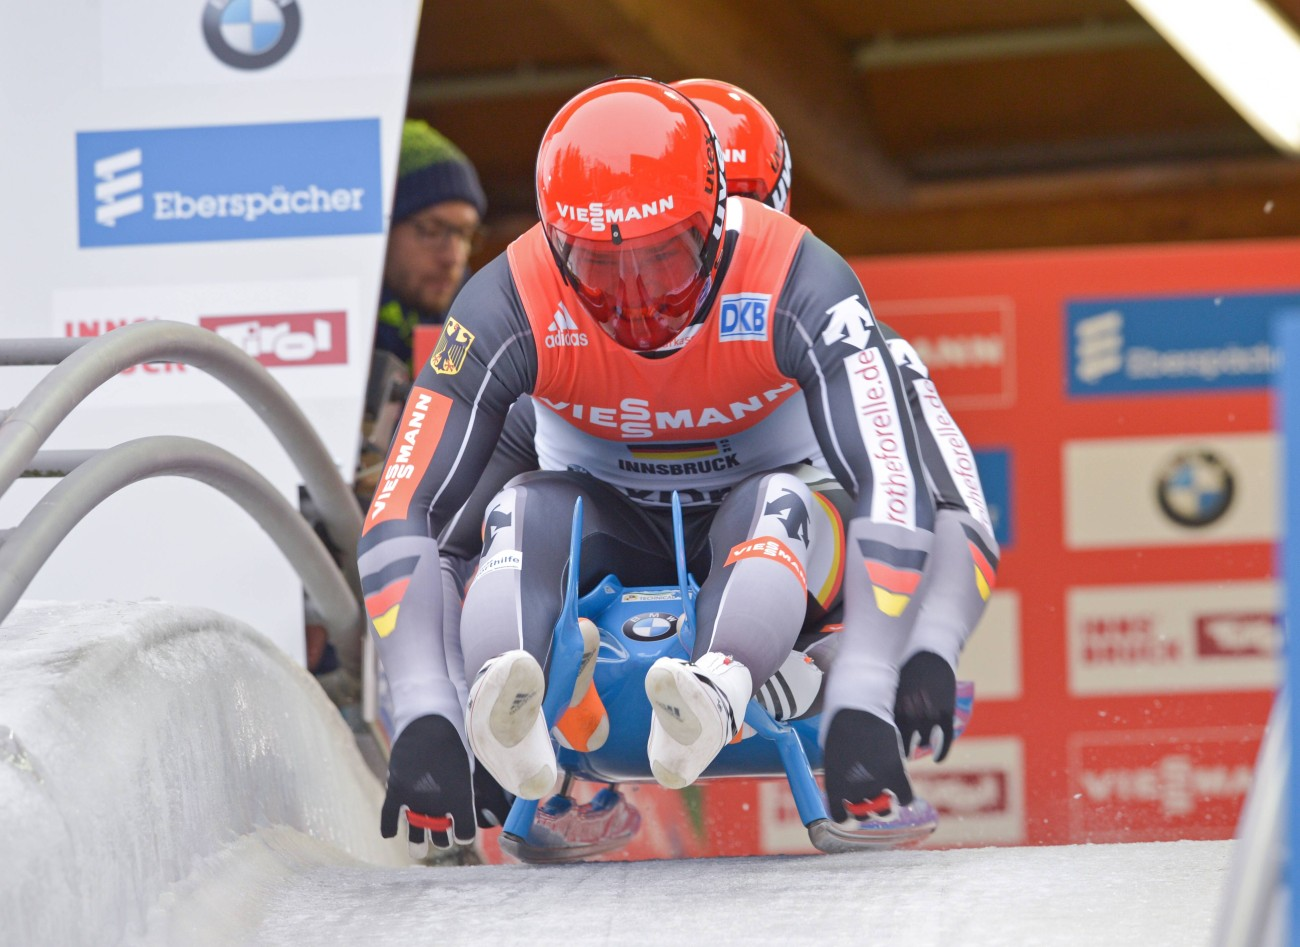 When lugers Eggert and Benecken race down ice-covered tracks, thyssenkrupp is right there with them